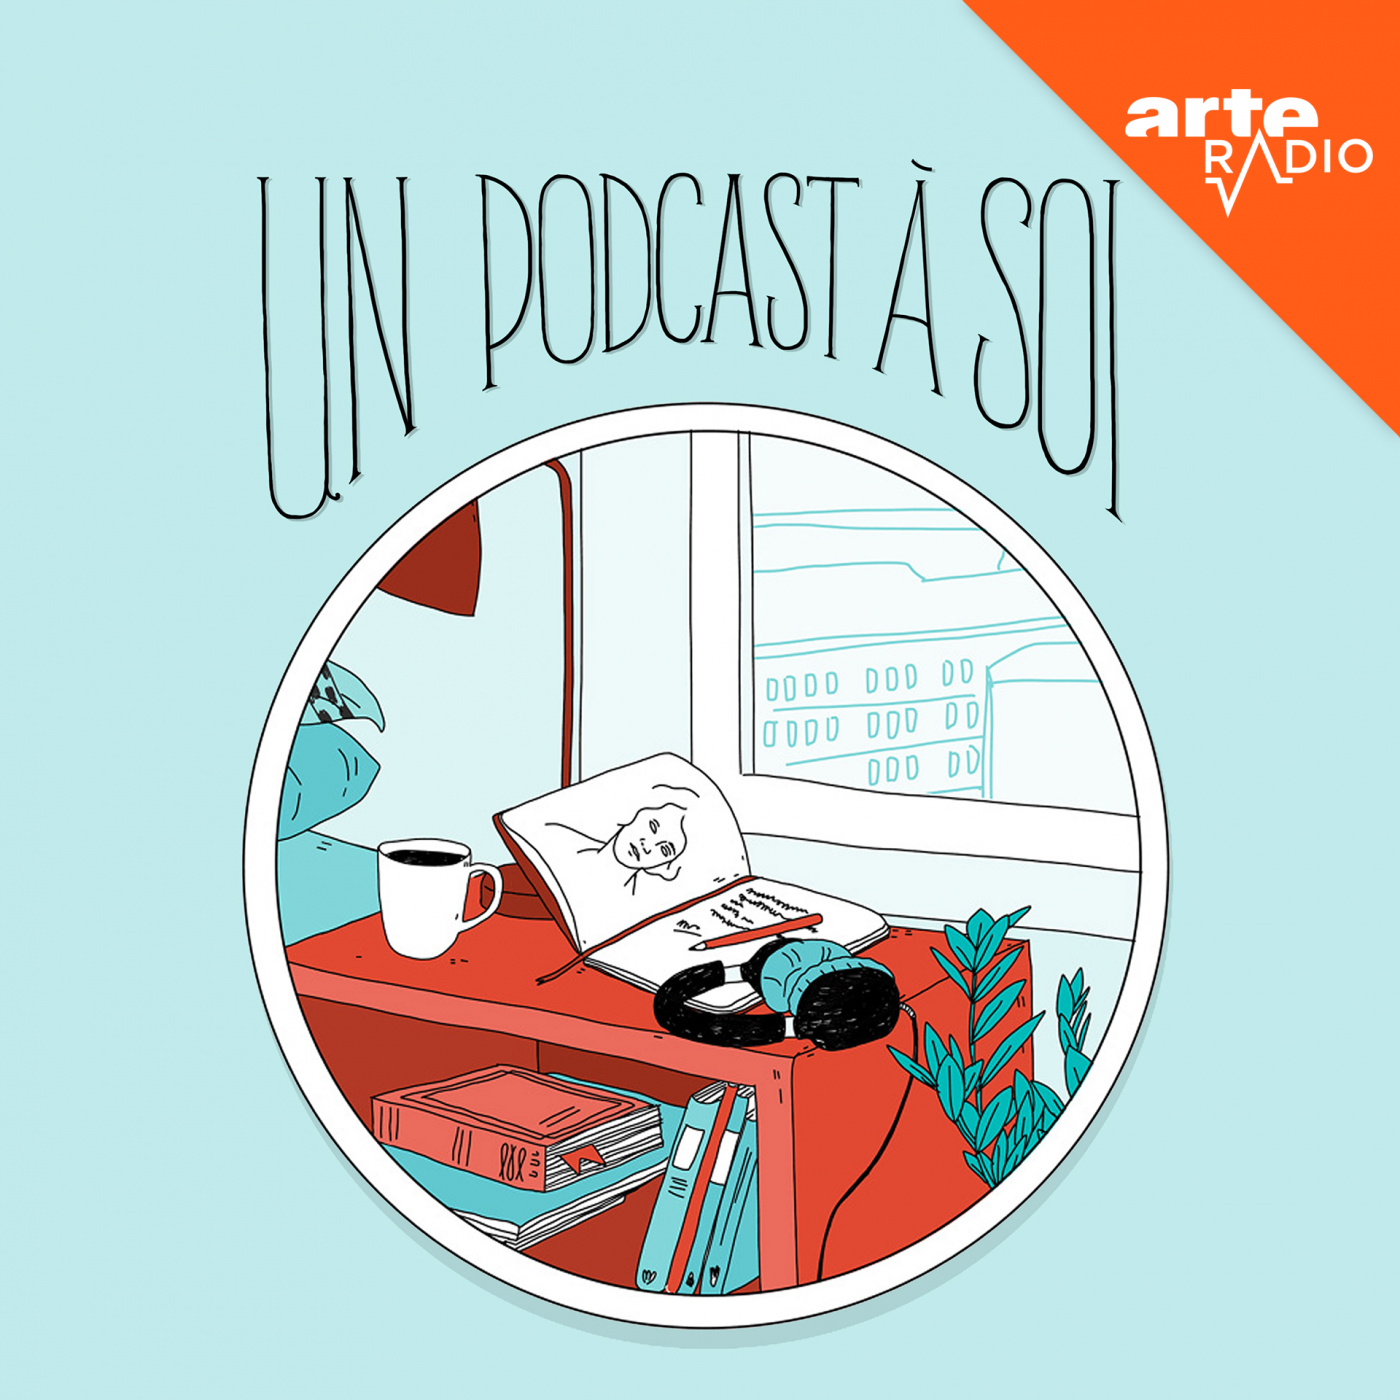 """Un podcast à soi"", une production ARTE Radio (visuel)."